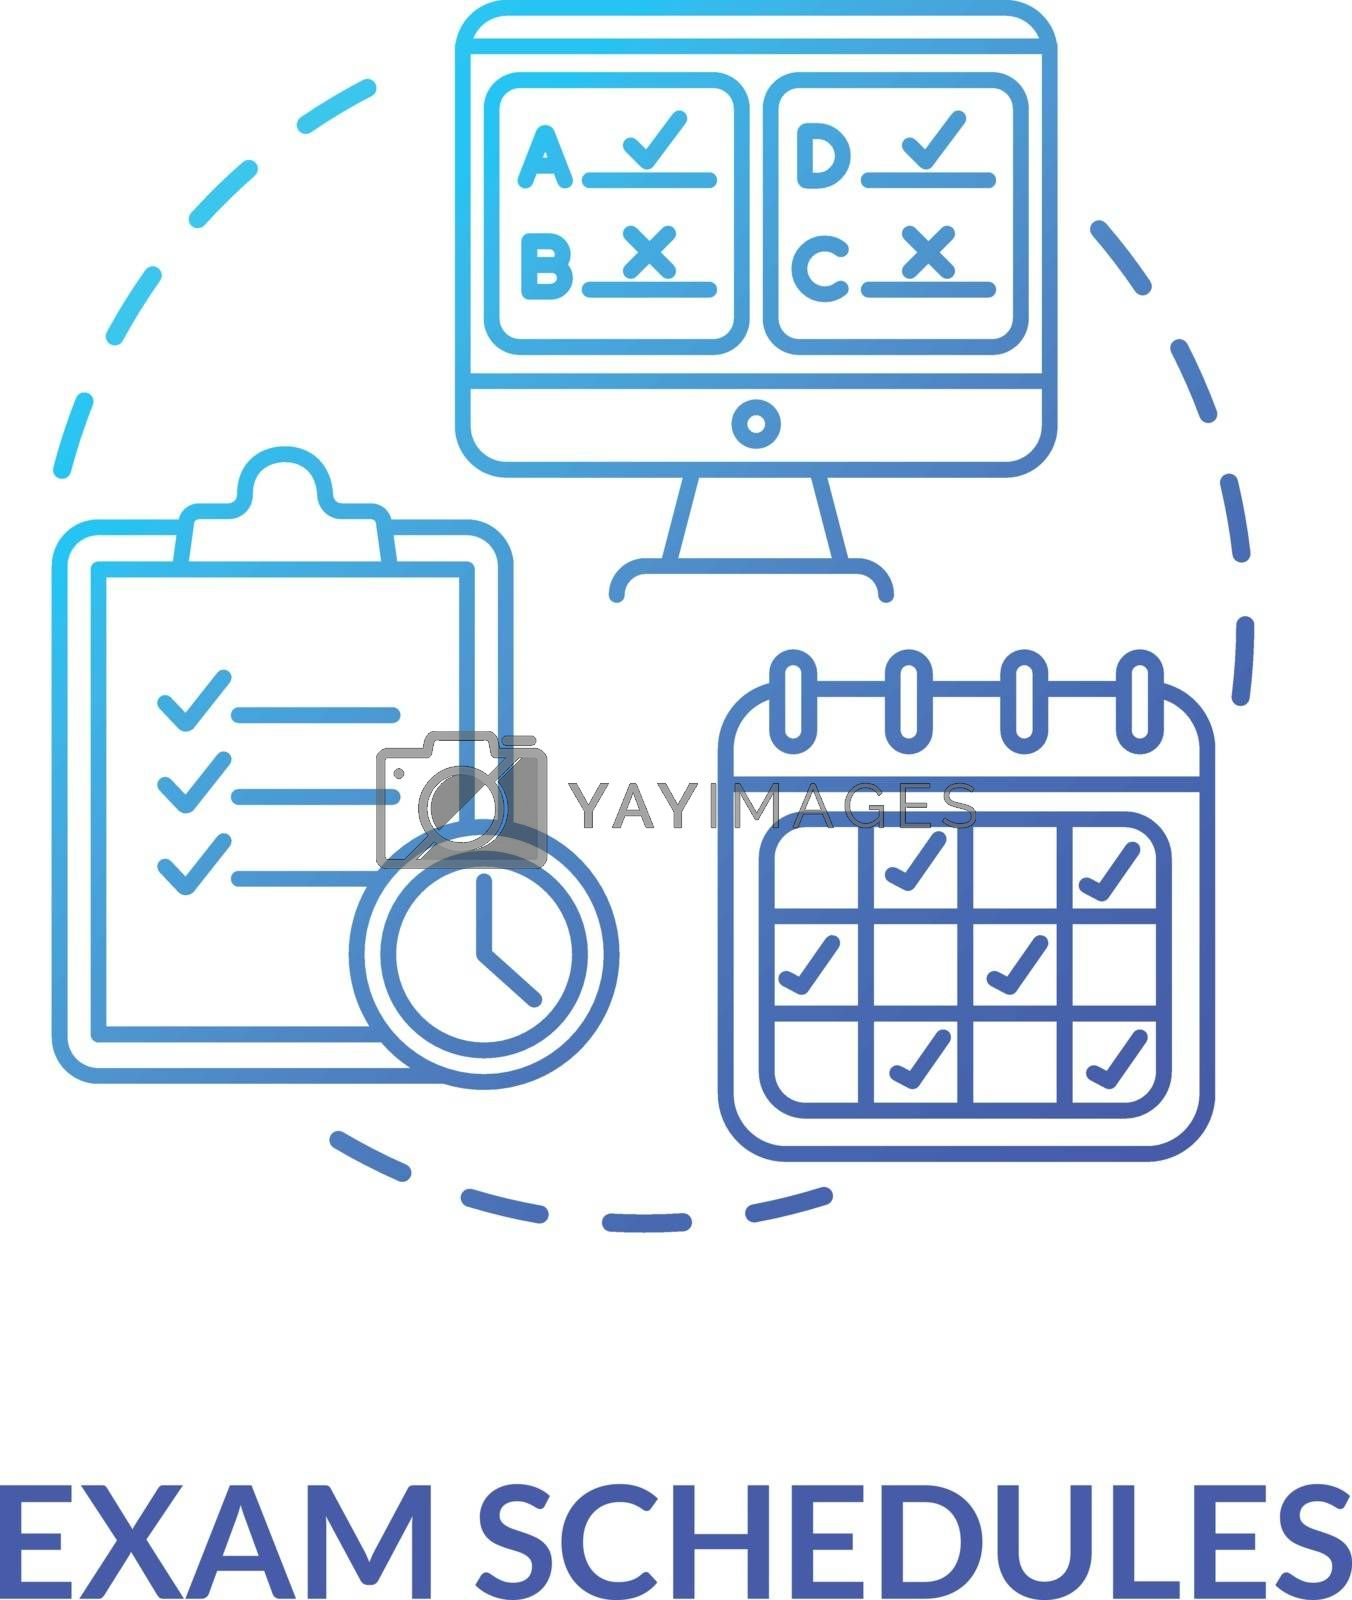 Exam schedules concept icon. Remote education process. Midterms and final examinations. Curriculum. Academic calendar idea thin line illustration. Vector isolated outline RGB color drawing